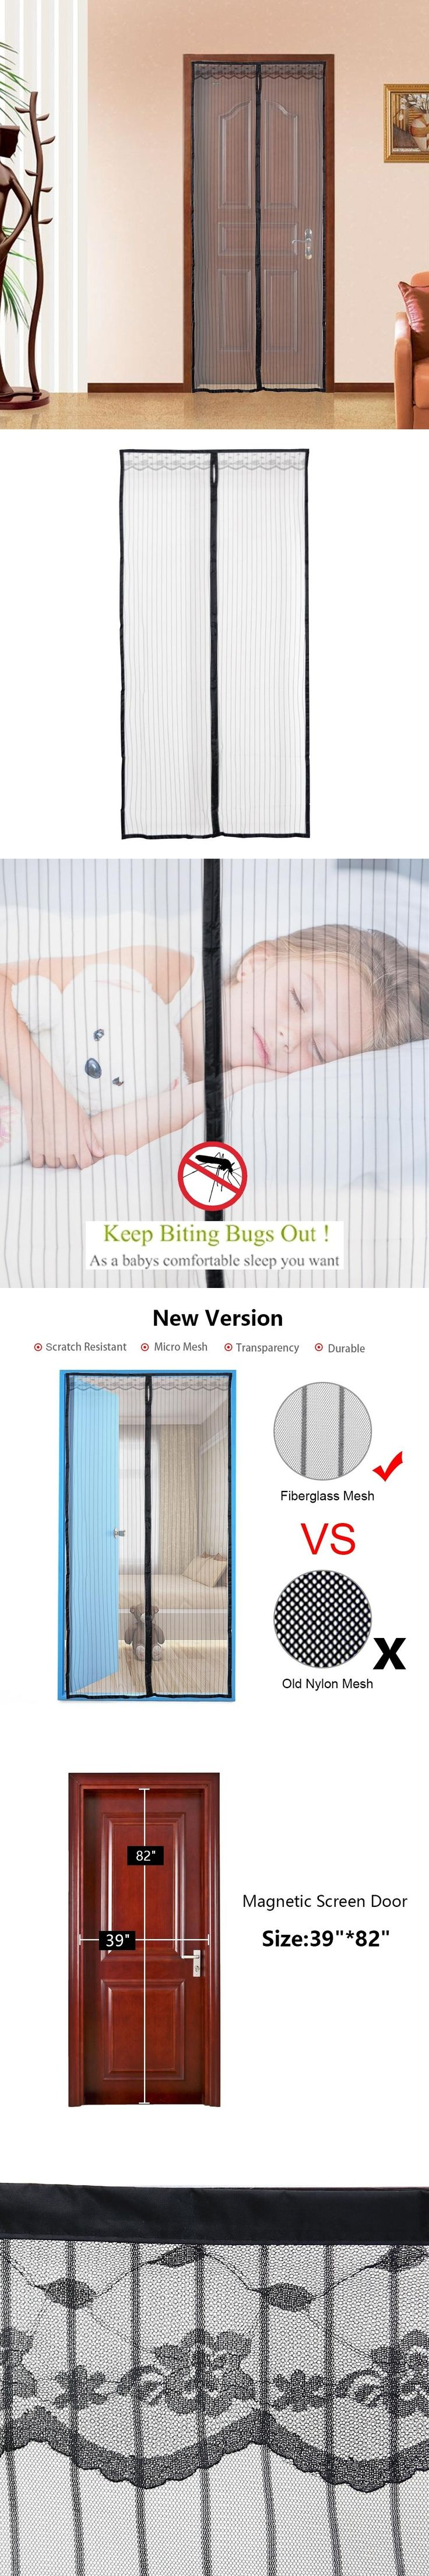 Adeeing Upgraded 100*210cm Hands-Free Magnetic Screen Door, Anti Mosquito Net Curtains, Fly Insect Stopping Mesh Screen